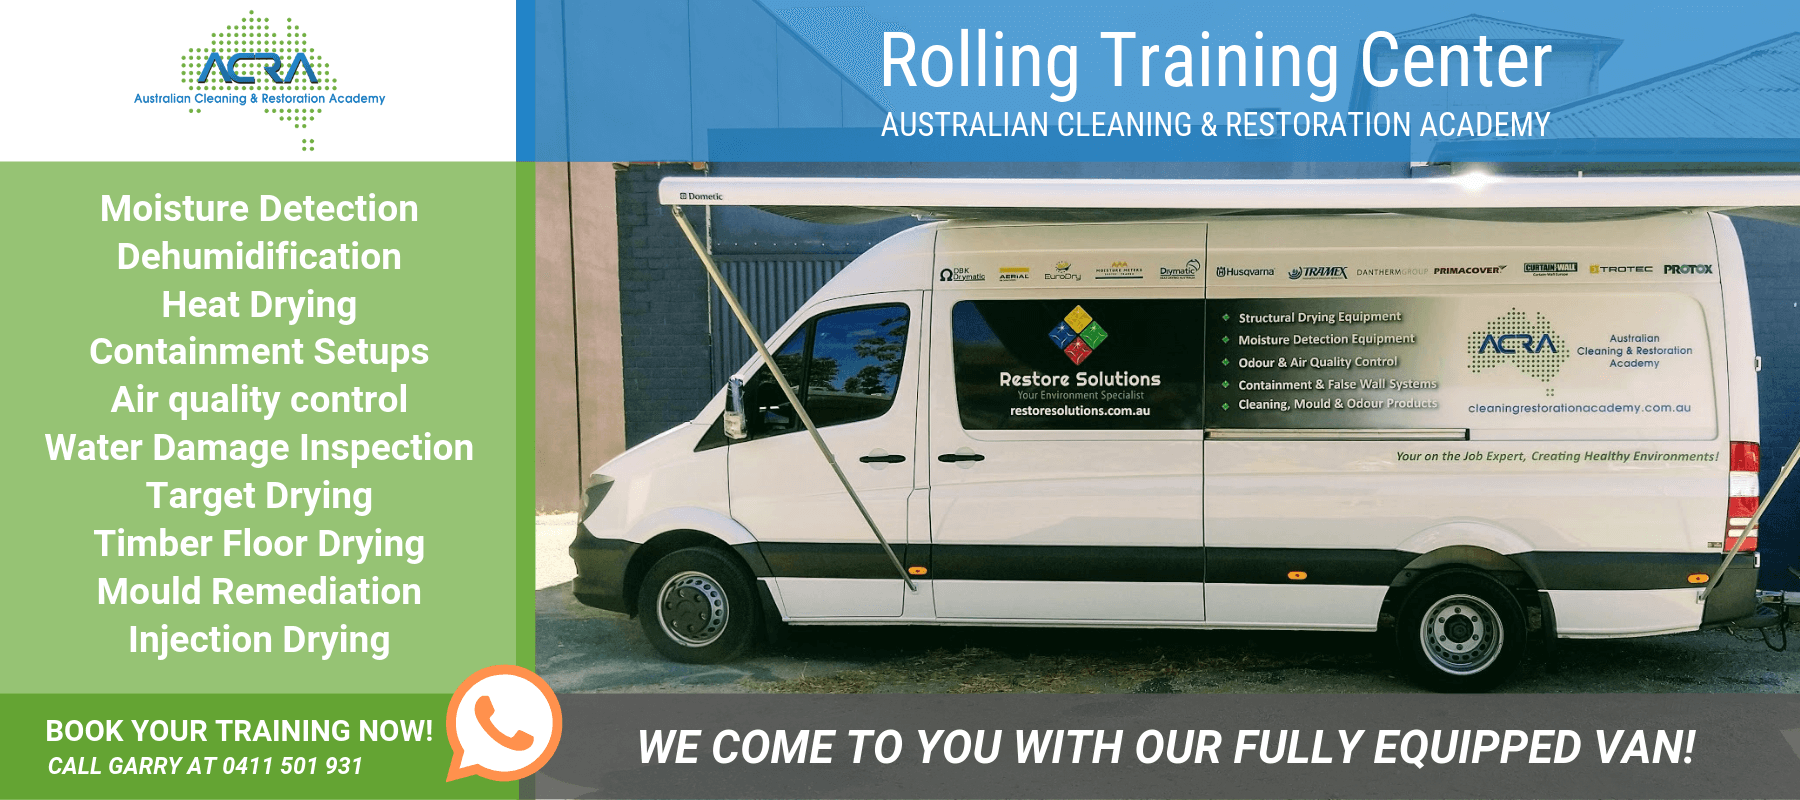 Rolling Training Center ACRA Australian Cleaning and Restoration Academy (1).png